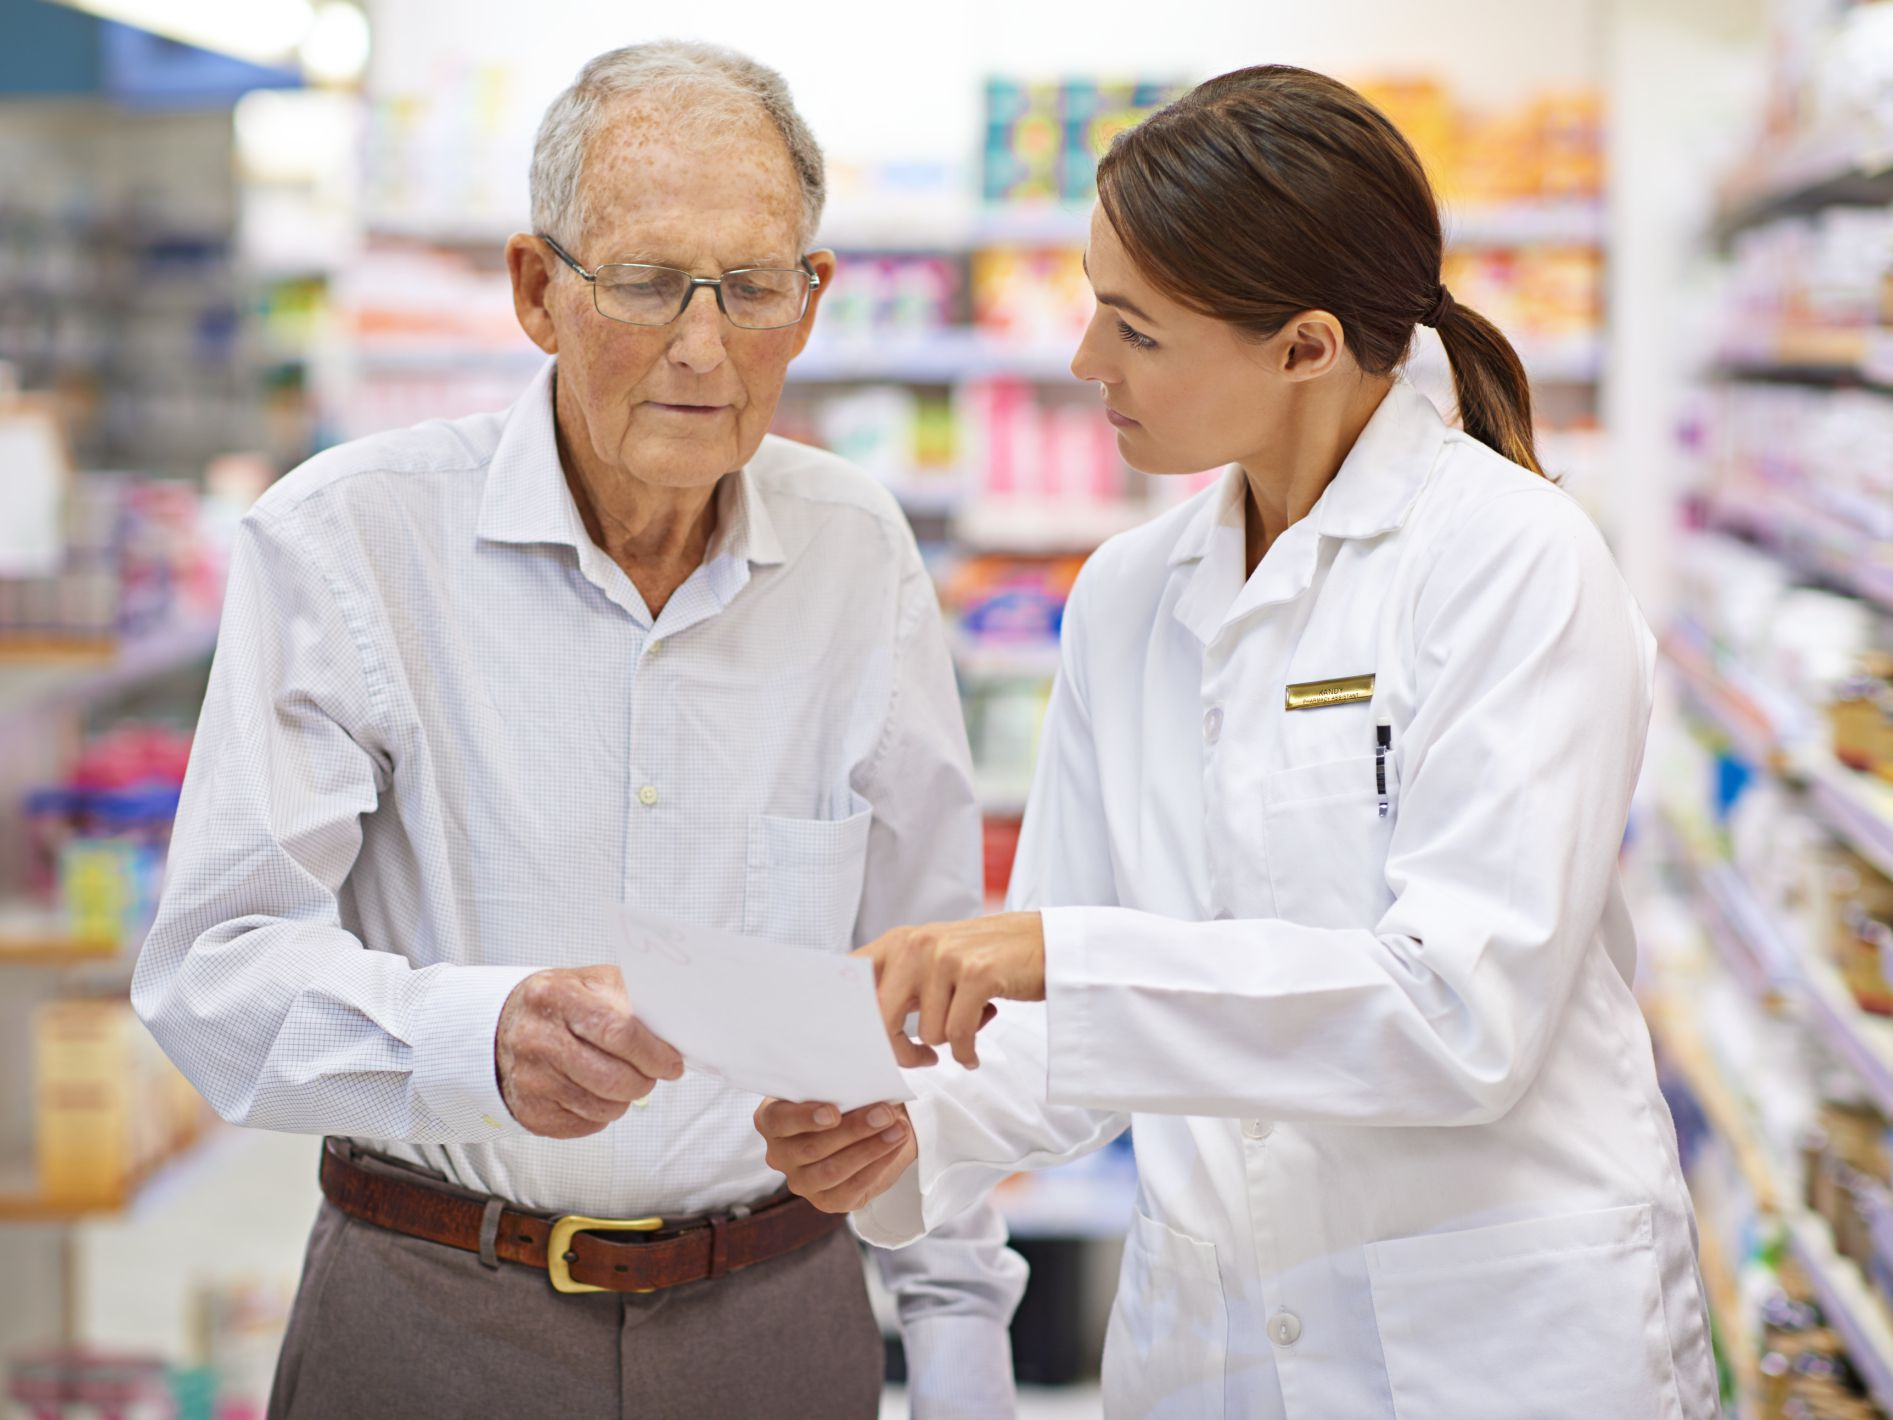 Out of Pocket Costs for Medicare Part D in 2019